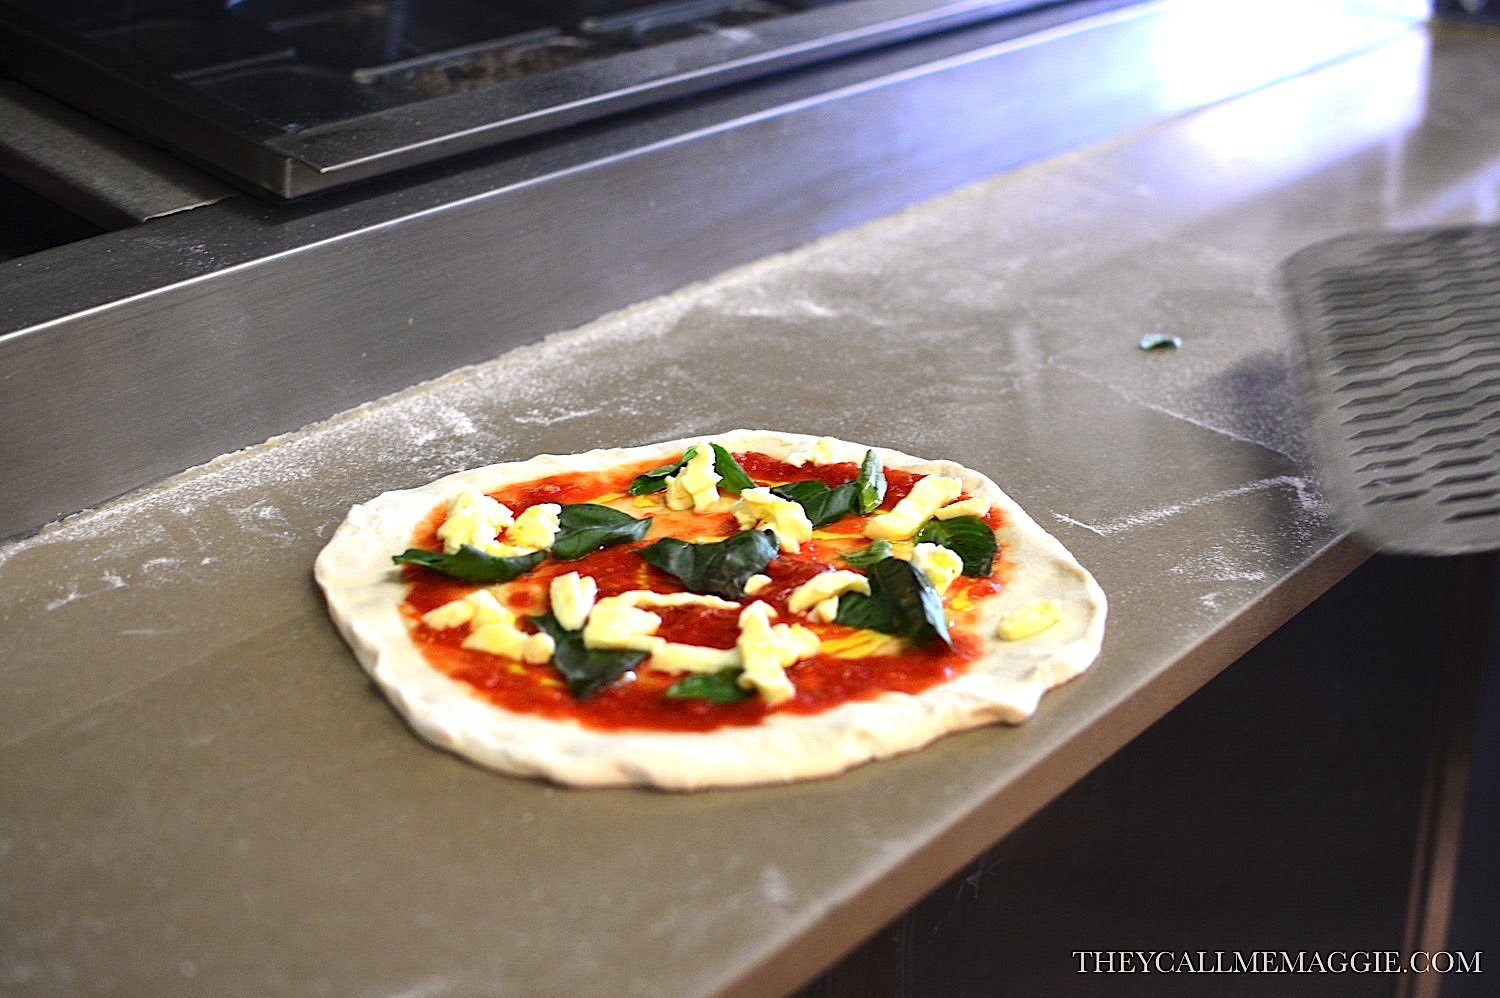 Margherita pizza, pre-cooked.